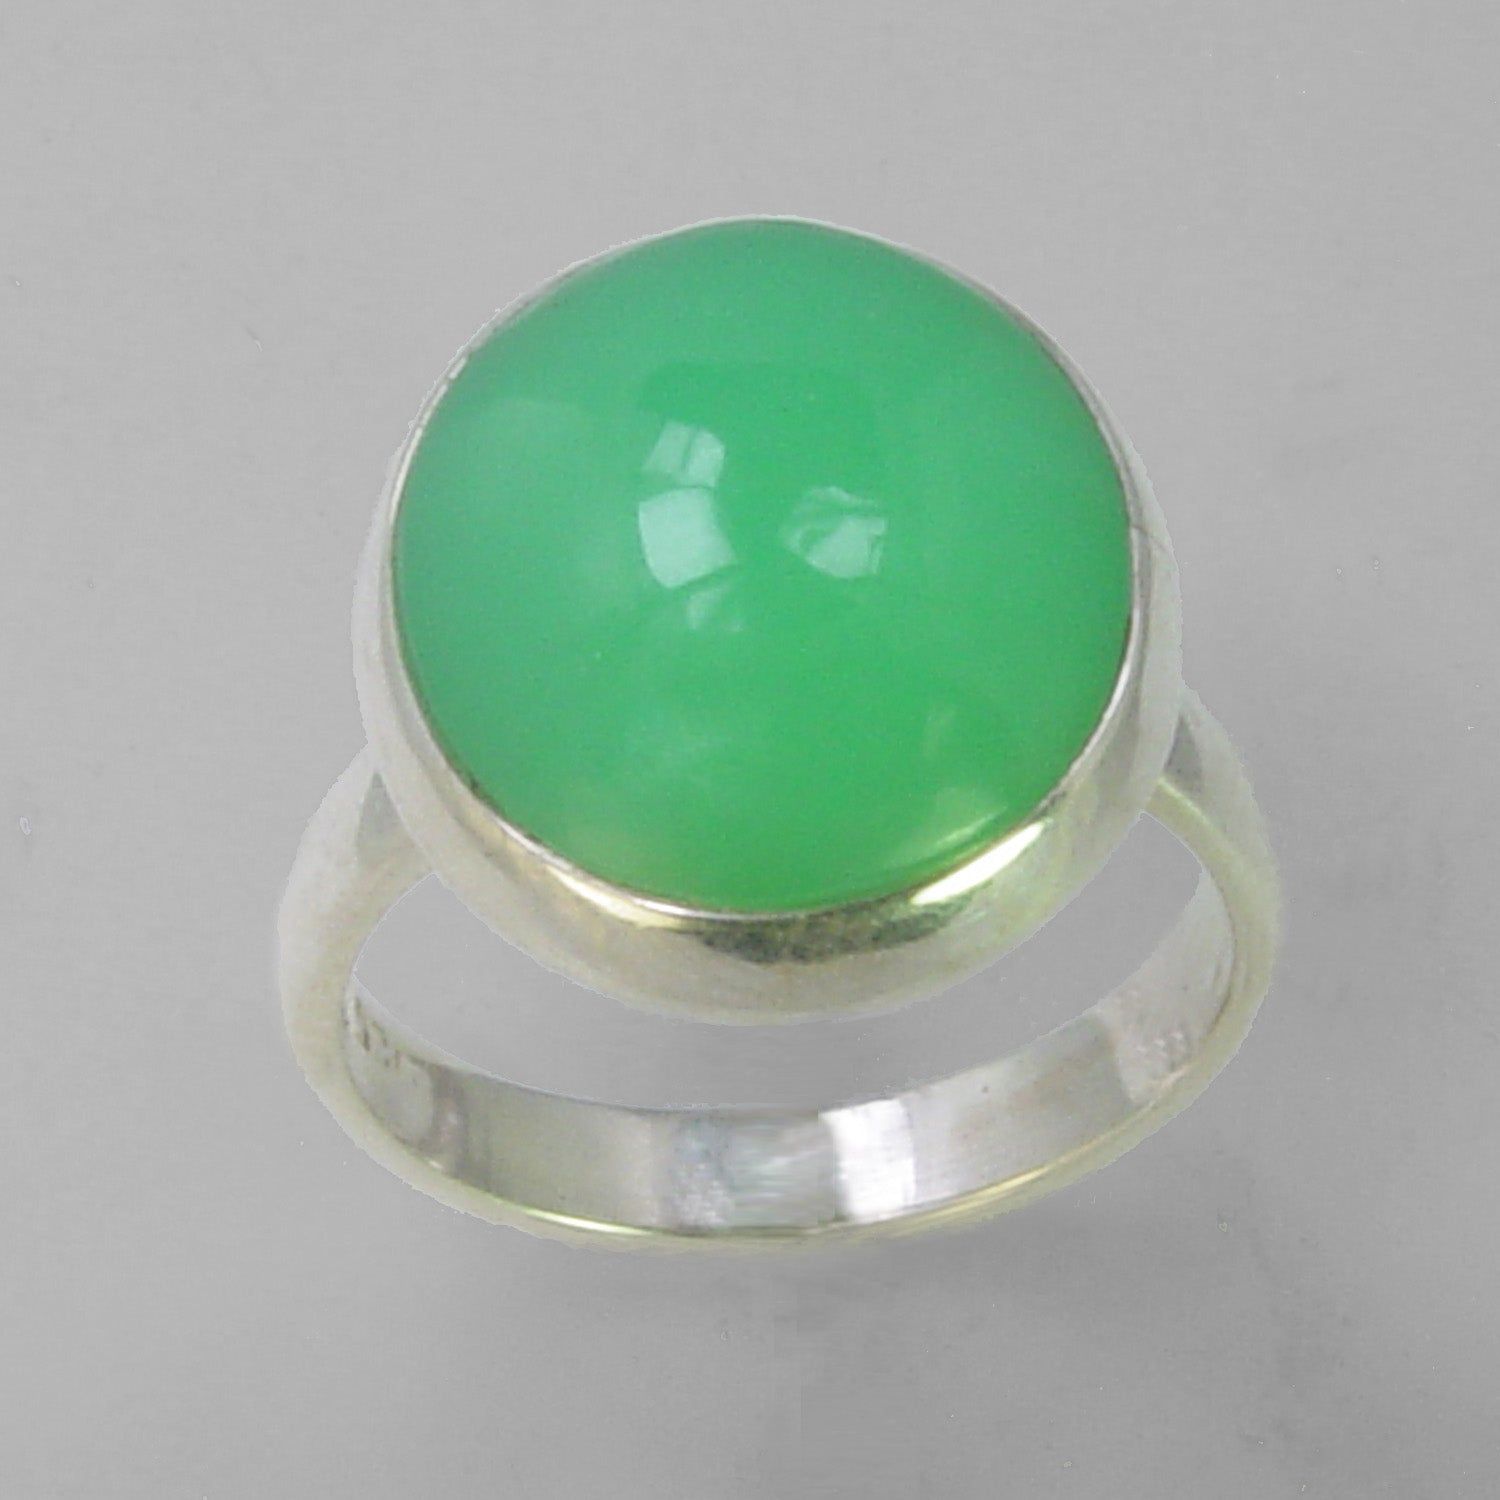 Chrysoprase 14 ct Oval Cab Bezel Set Sterling Silver Ring, Size 9